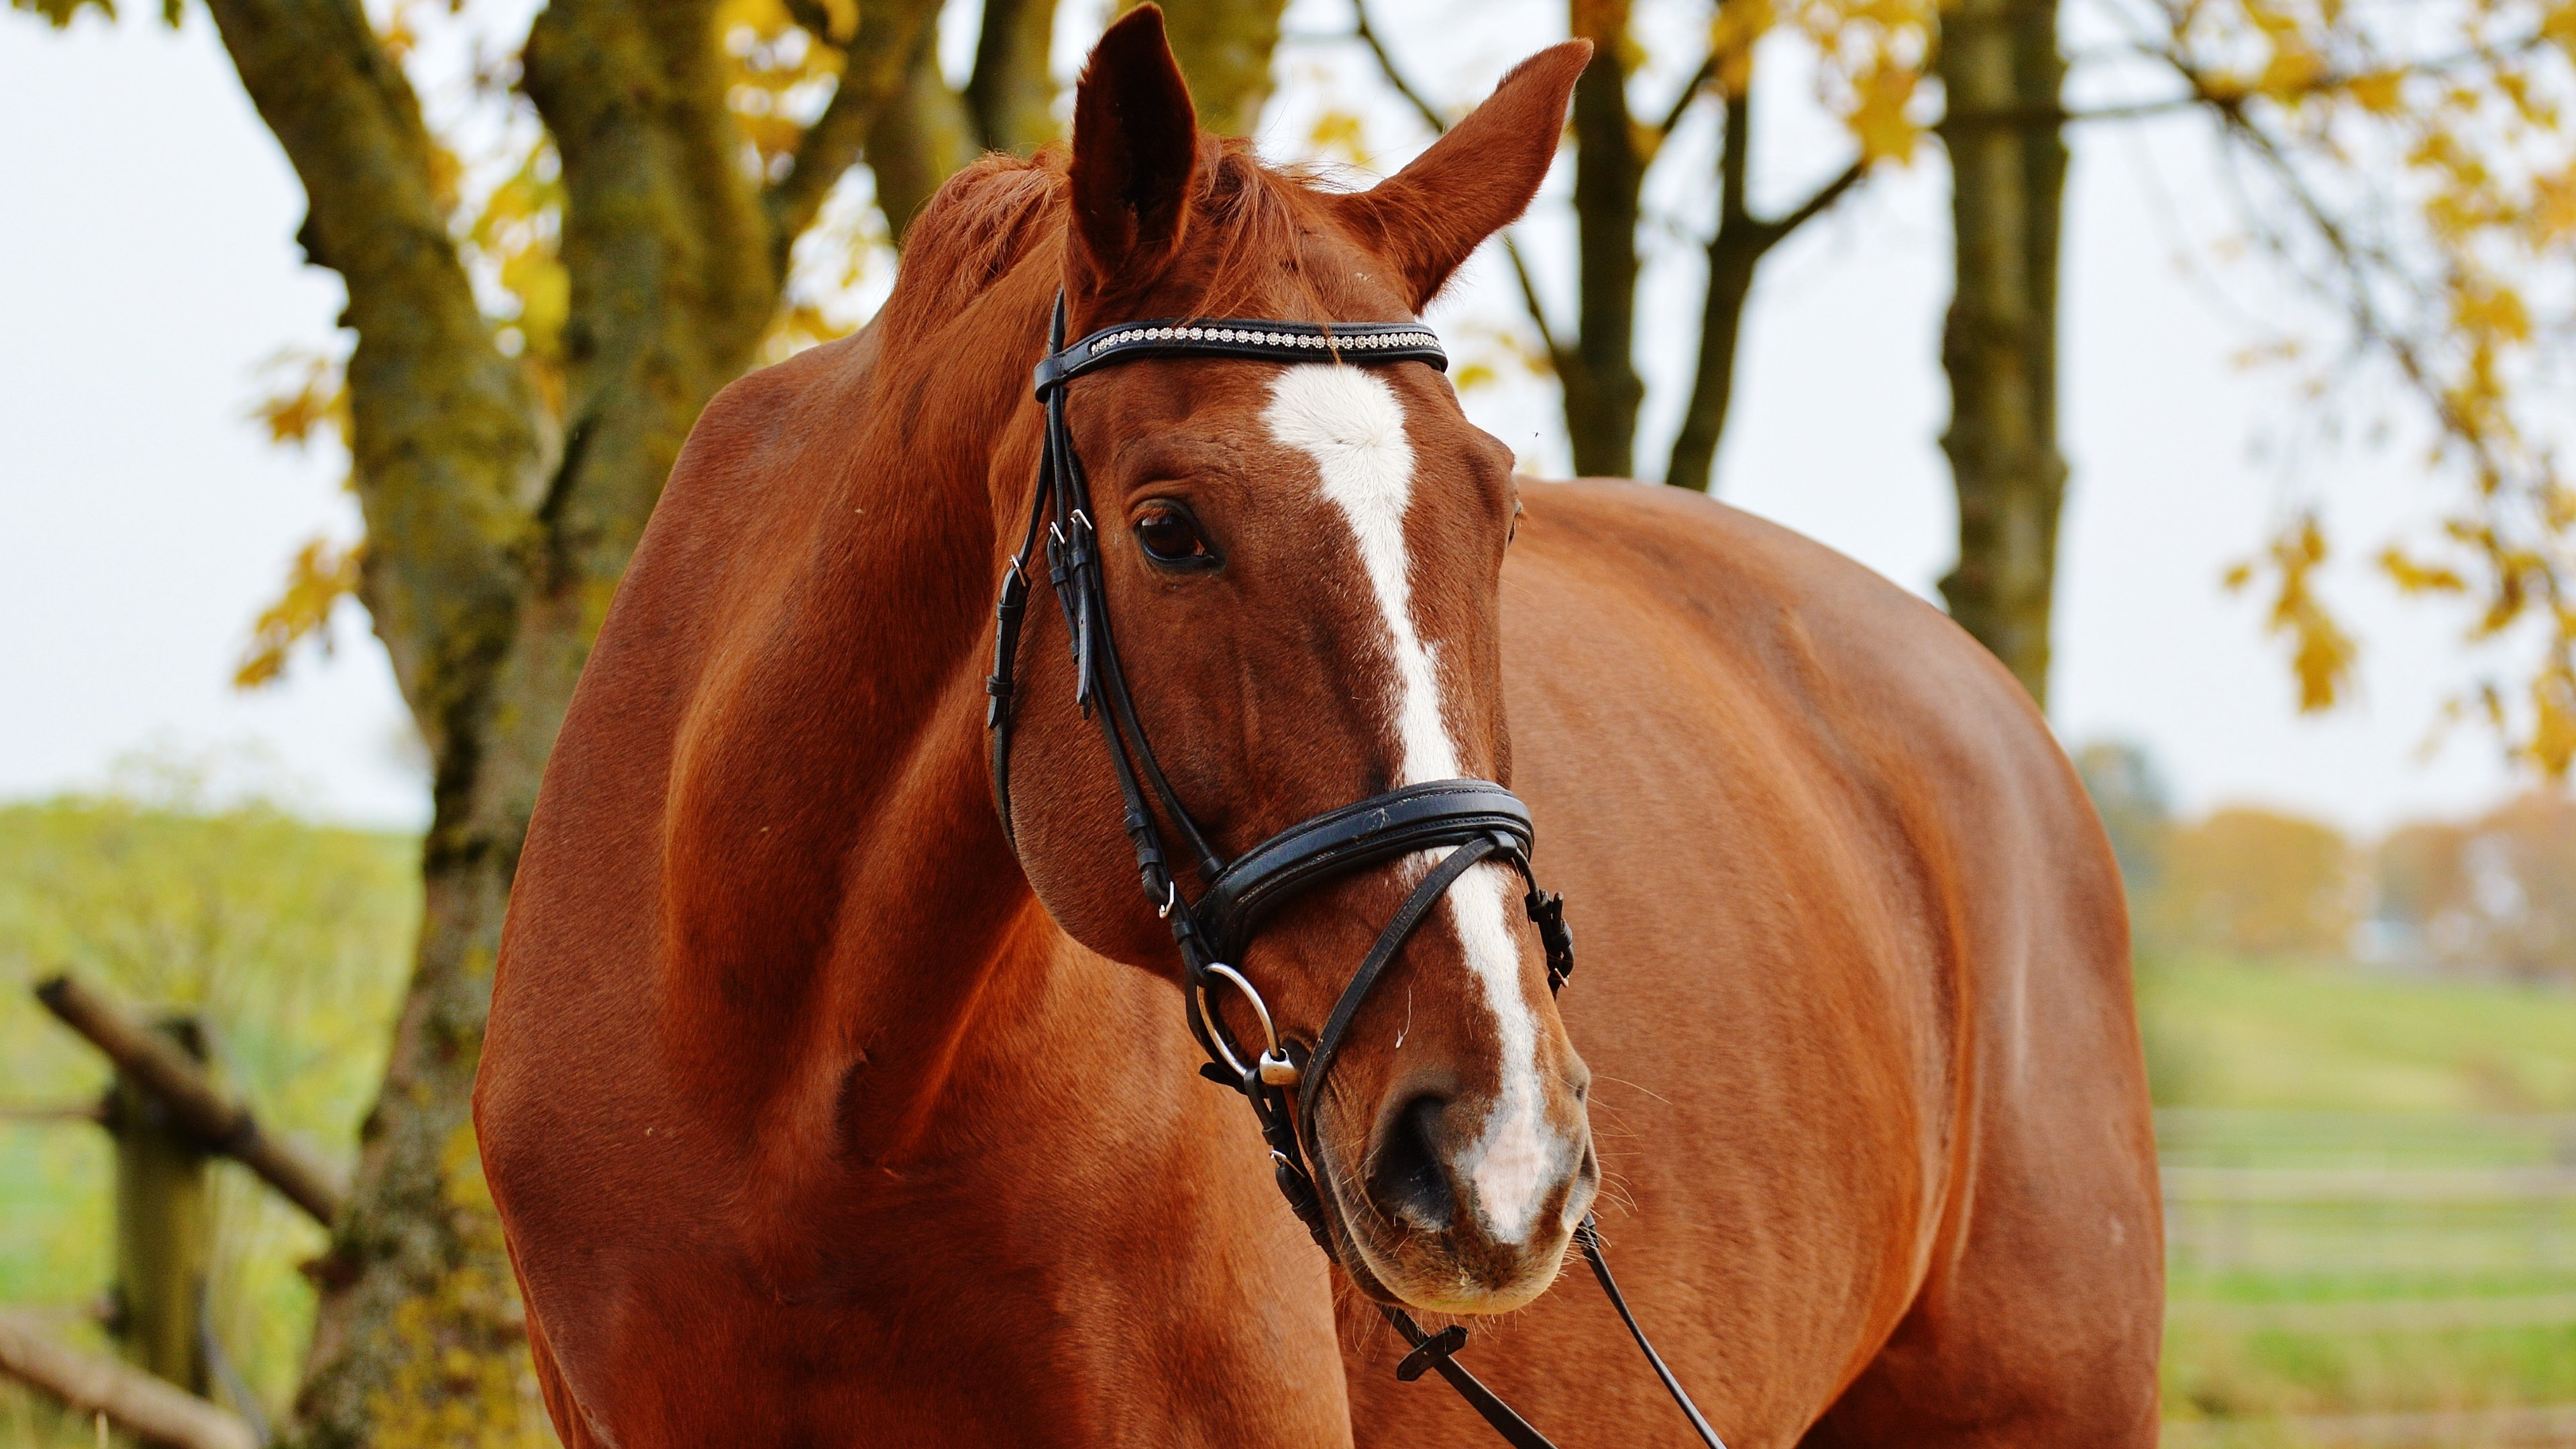 Chestnut horse wallpapers - photo#7